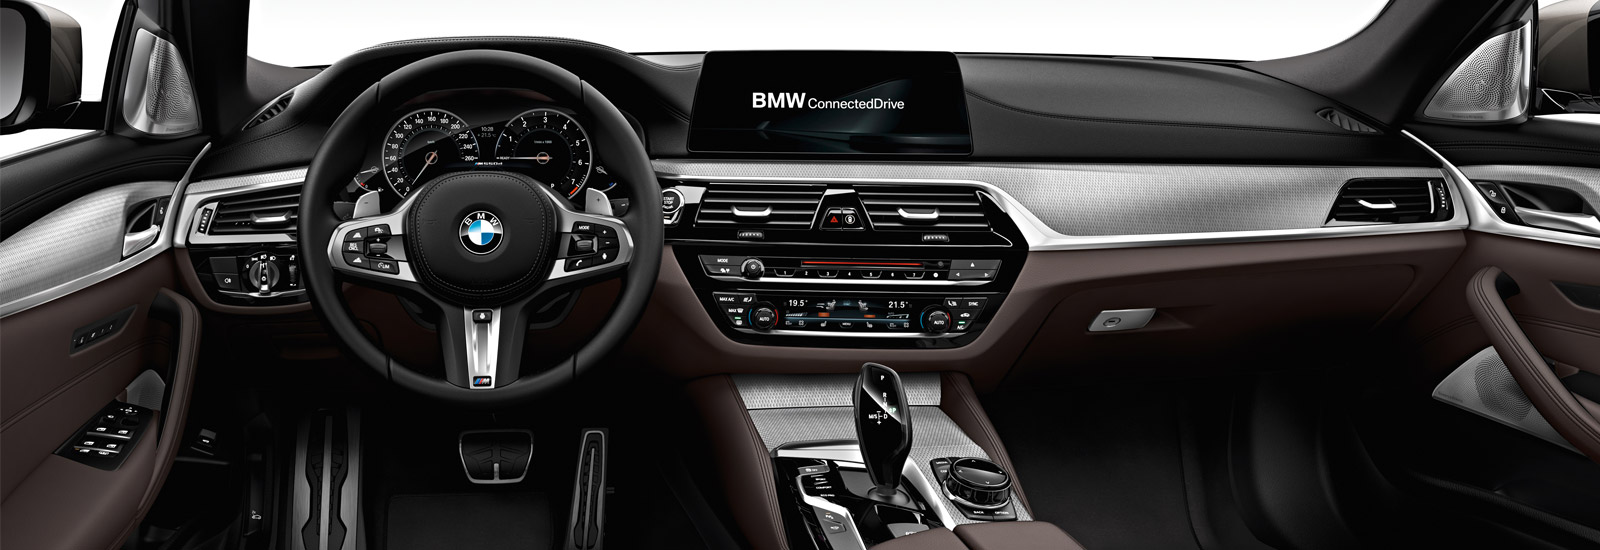 2018 bmw 5 series interior. contemporary interior the new m550d will be offered in both saloon and touring estate guise  feature a similar plush cabin to the standard 5 series and 2018 bmw series interior